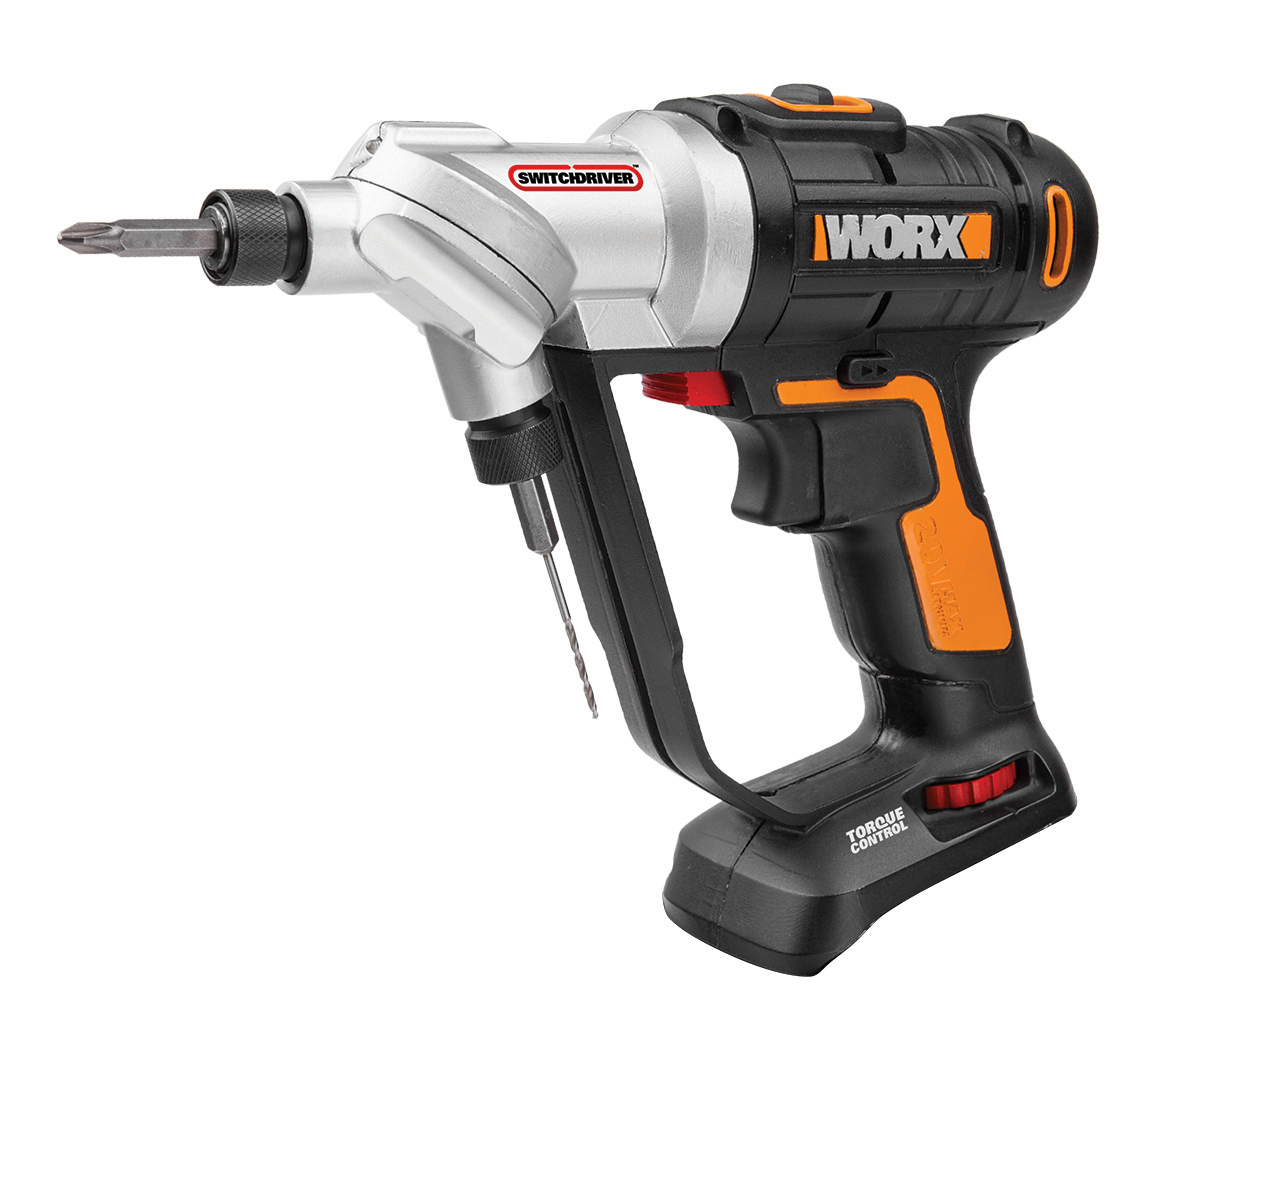 WORX 20-Volt Switchdriver Bare Tool ( No Battery, No Charger Included )